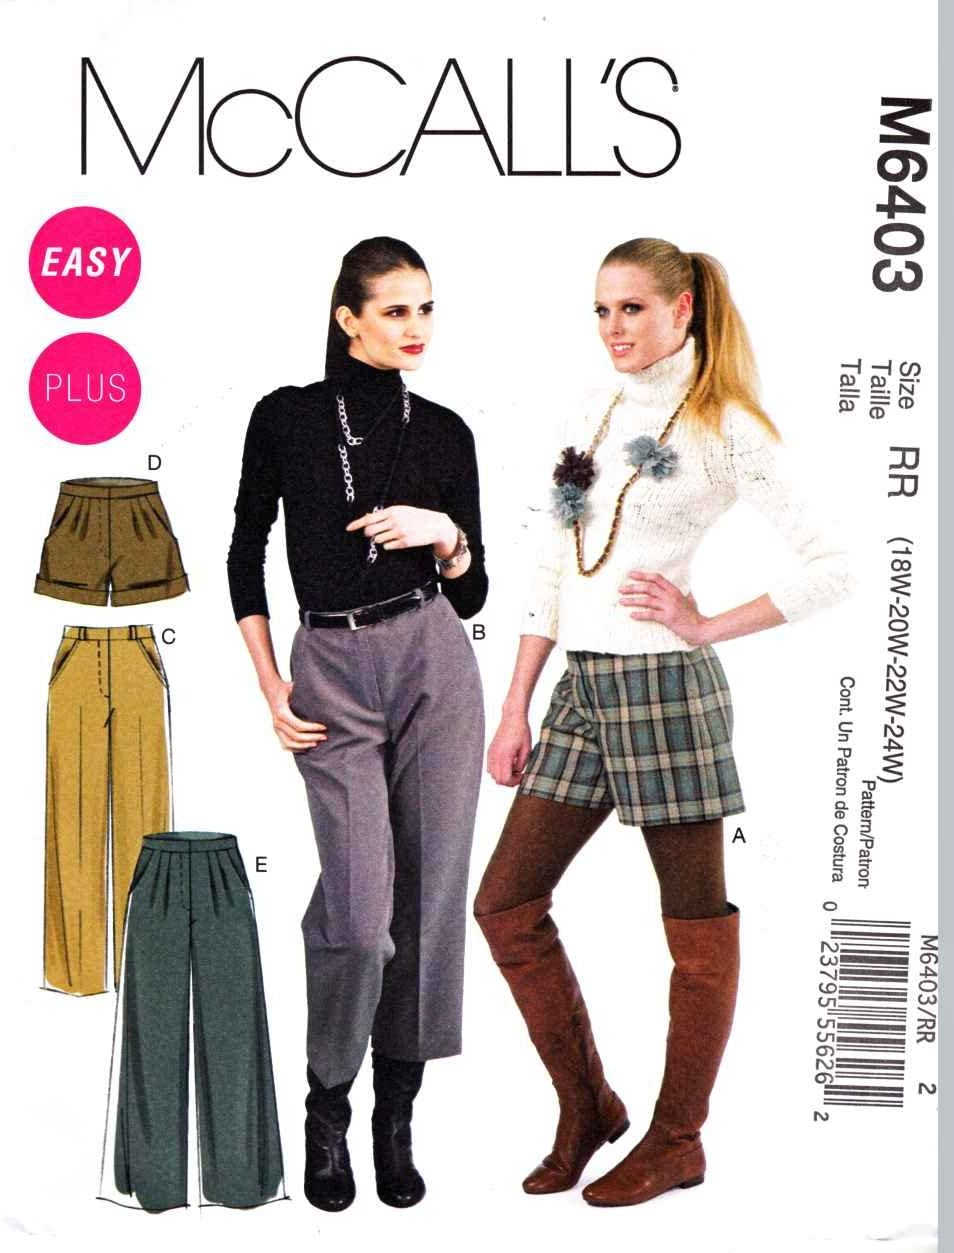 McCall's Patterns M6403 Misses'/Women's Shorts and Pants In 2 Lengths, Size RR (18W-20W-22W-24W)